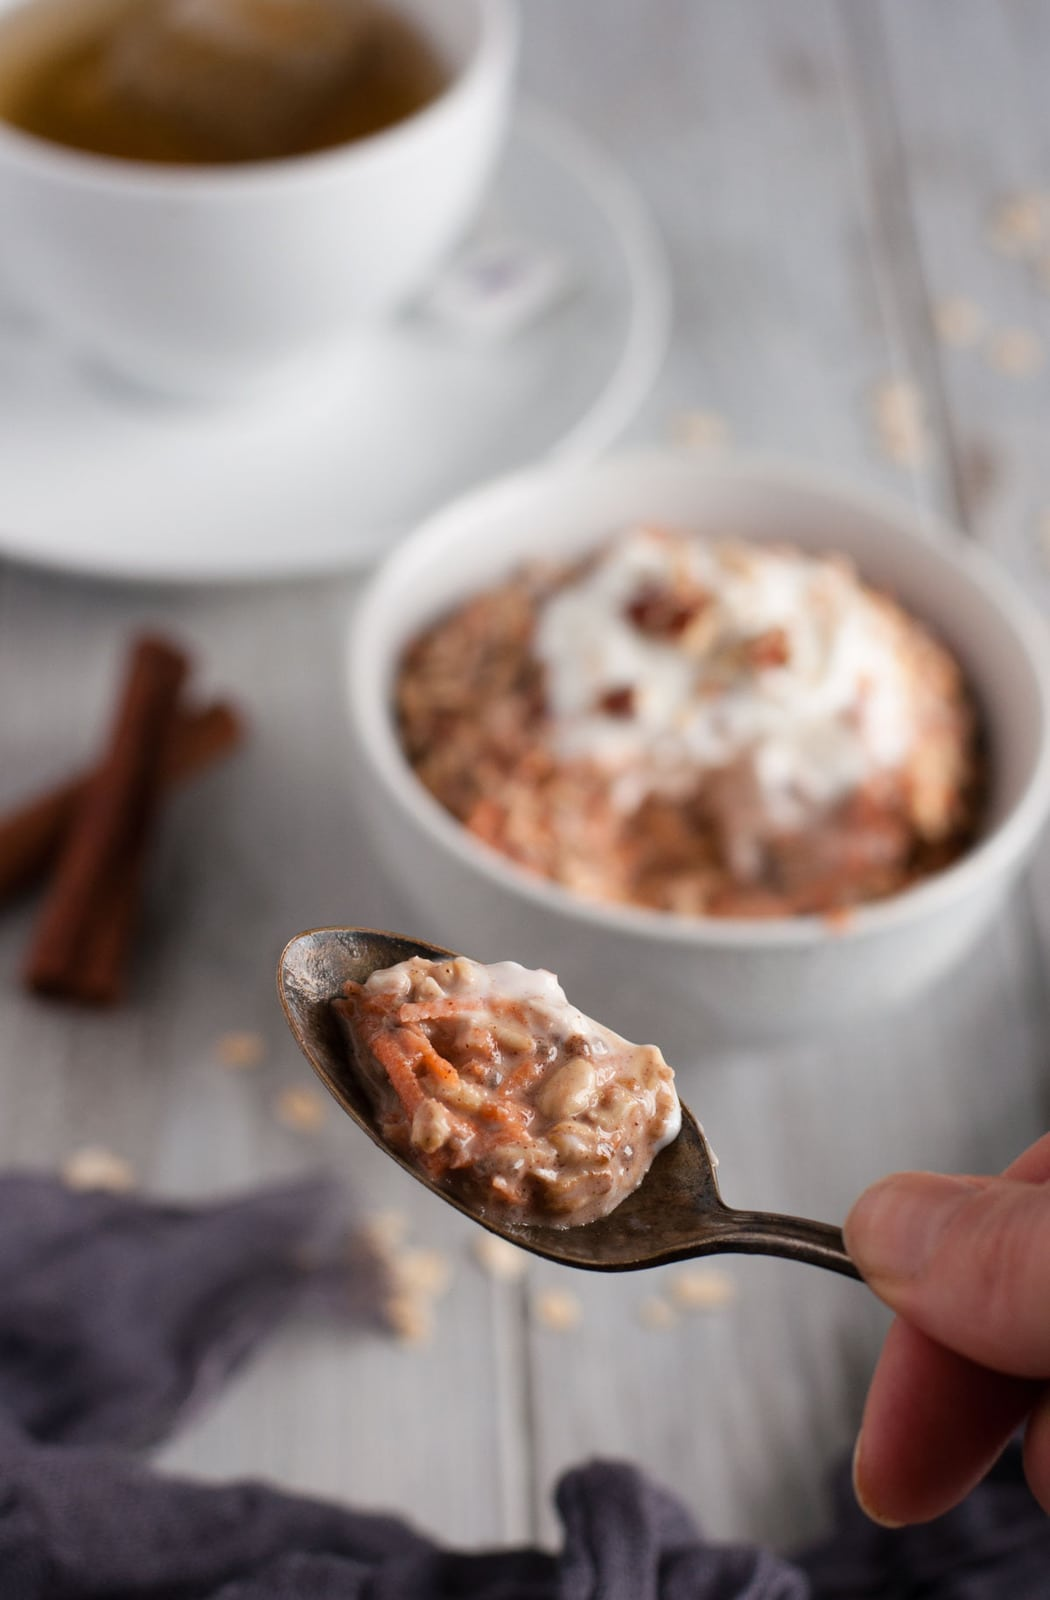 Carrot cake overnight oats are a healthy 350 calorie breakfast that tastes just enough like the favorite dessert to make breakfast seem like a treat.